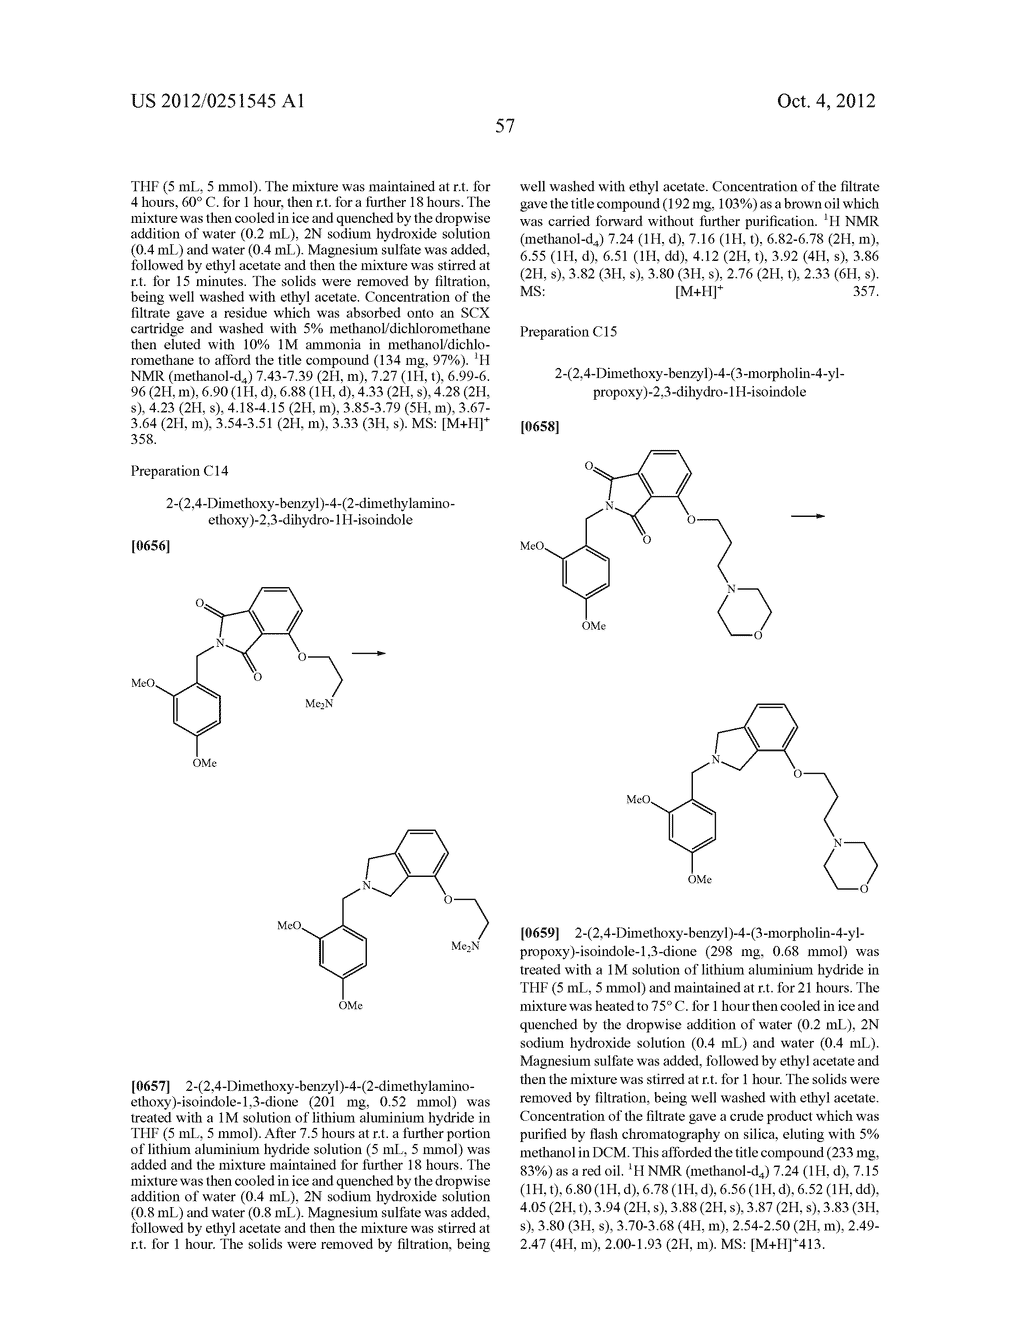 Therapeutic Combinations Of Hydroxybenzamide Derivatives As Inhibitors Of     HSP90 - diagram, schematic, and image 58